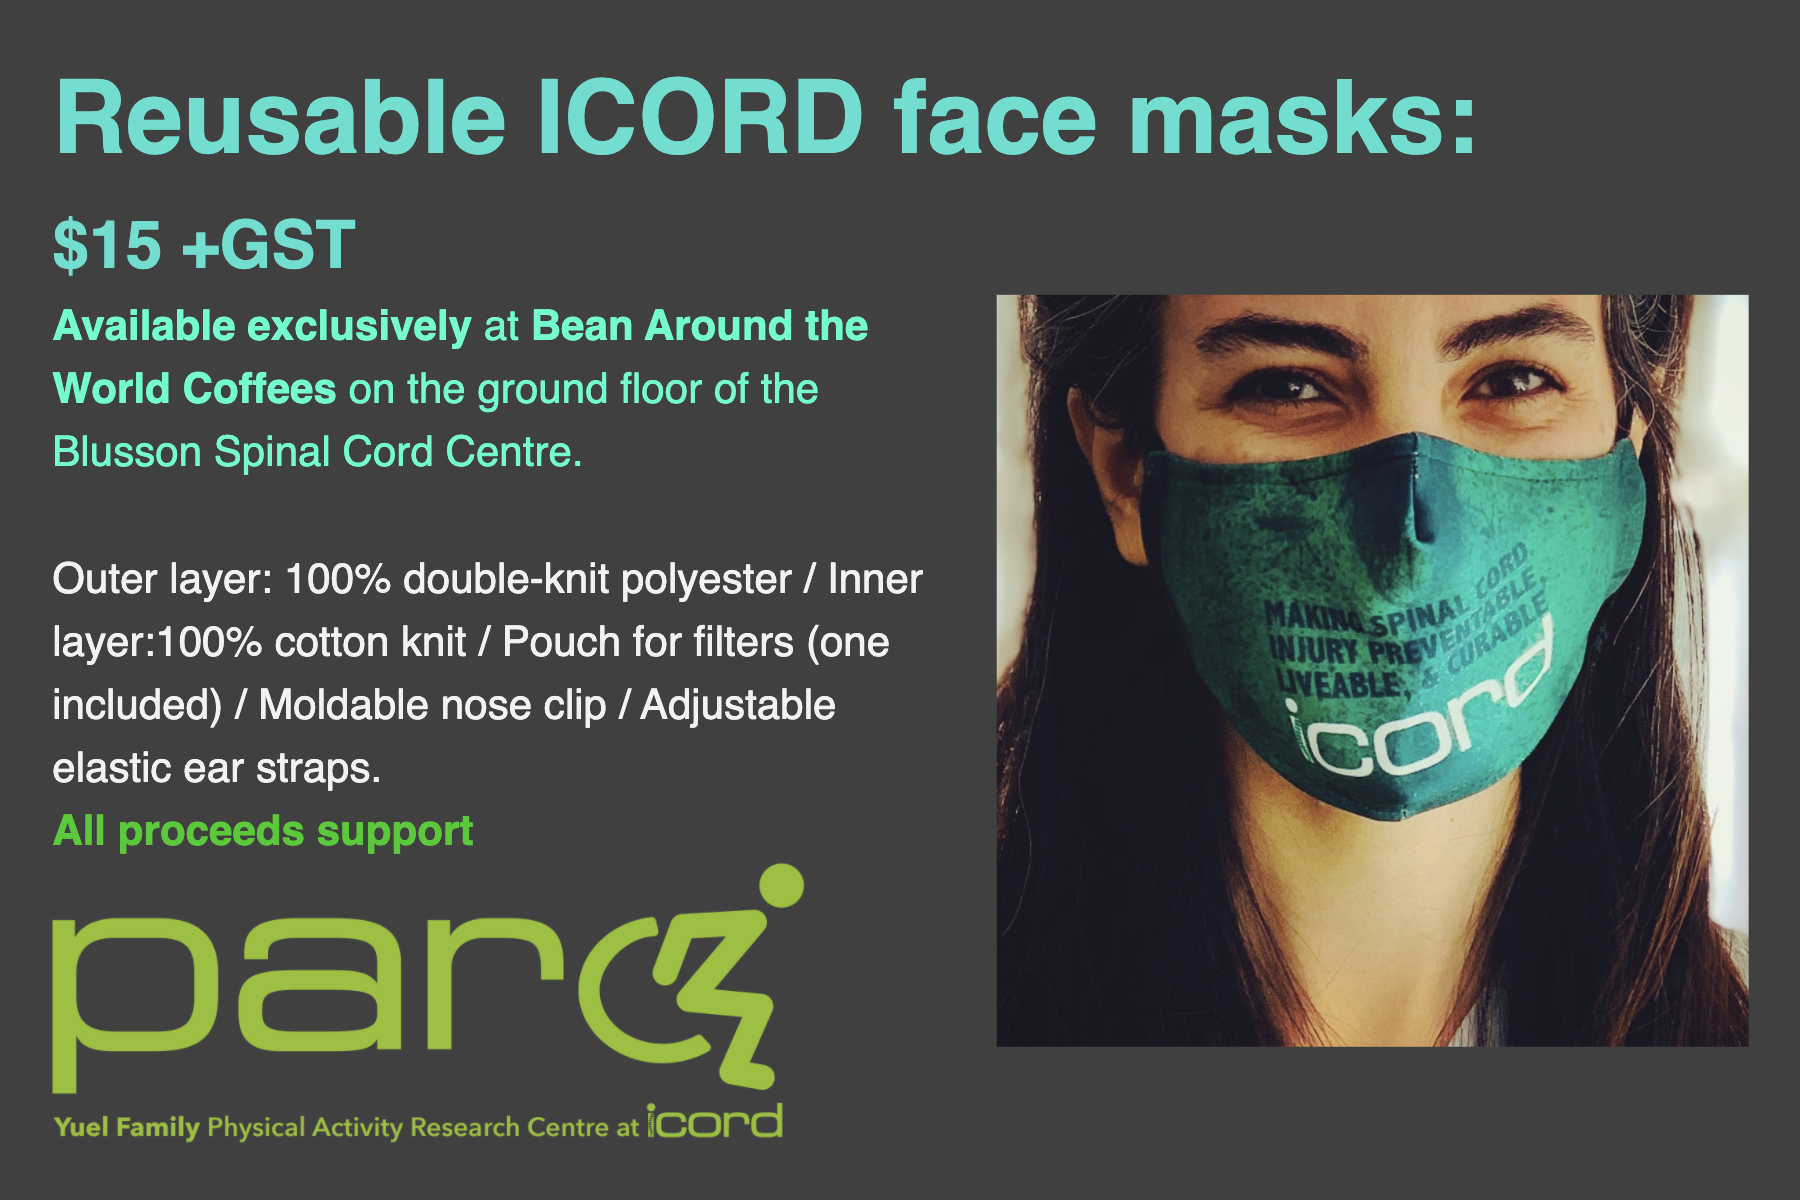 Reusable ICORD face masks:  $15 +GST Available exclusively at Bean Around the World Coffees on the ground floor of the Blusson Spinal Cord Centre.  Outer layer: 100% double-knit polyester / Inner layer:100% cotton knit / Pouch for filters (one included) / Moldable nose clip / Adjustable elastic ear straps. All proceeds support PARC.